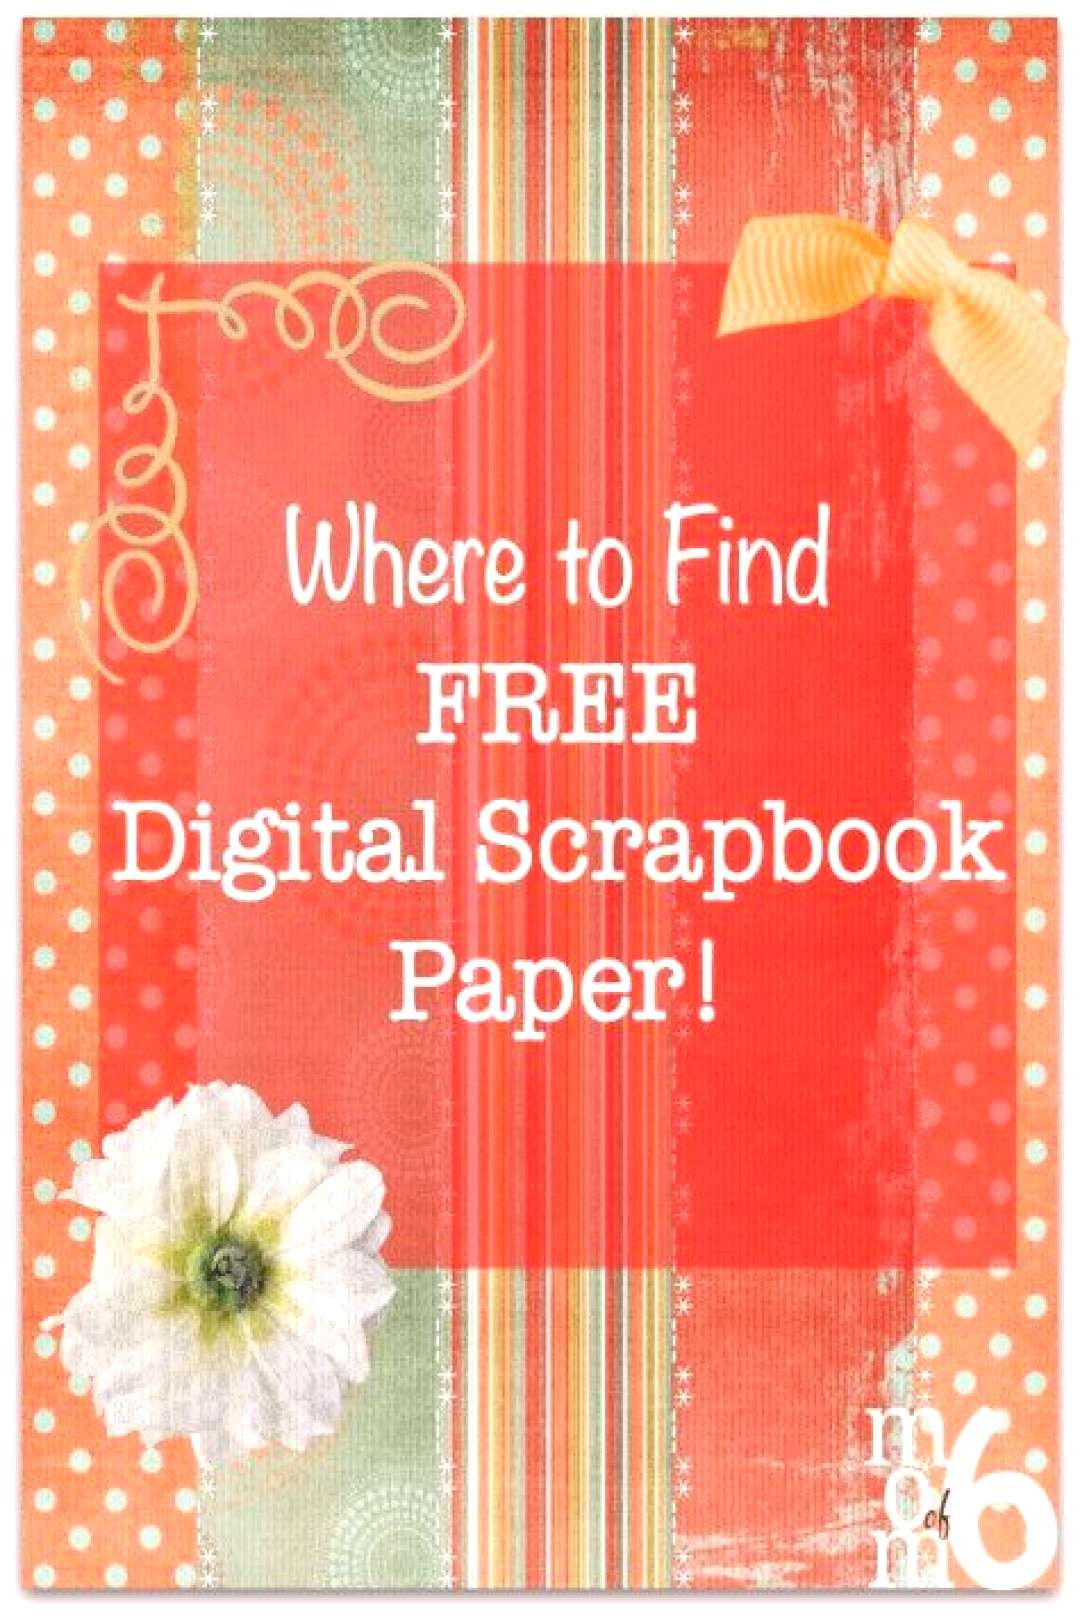 In Part 3 of our series on Free Digital Scrapbooking, I am going to show you a list of sites where